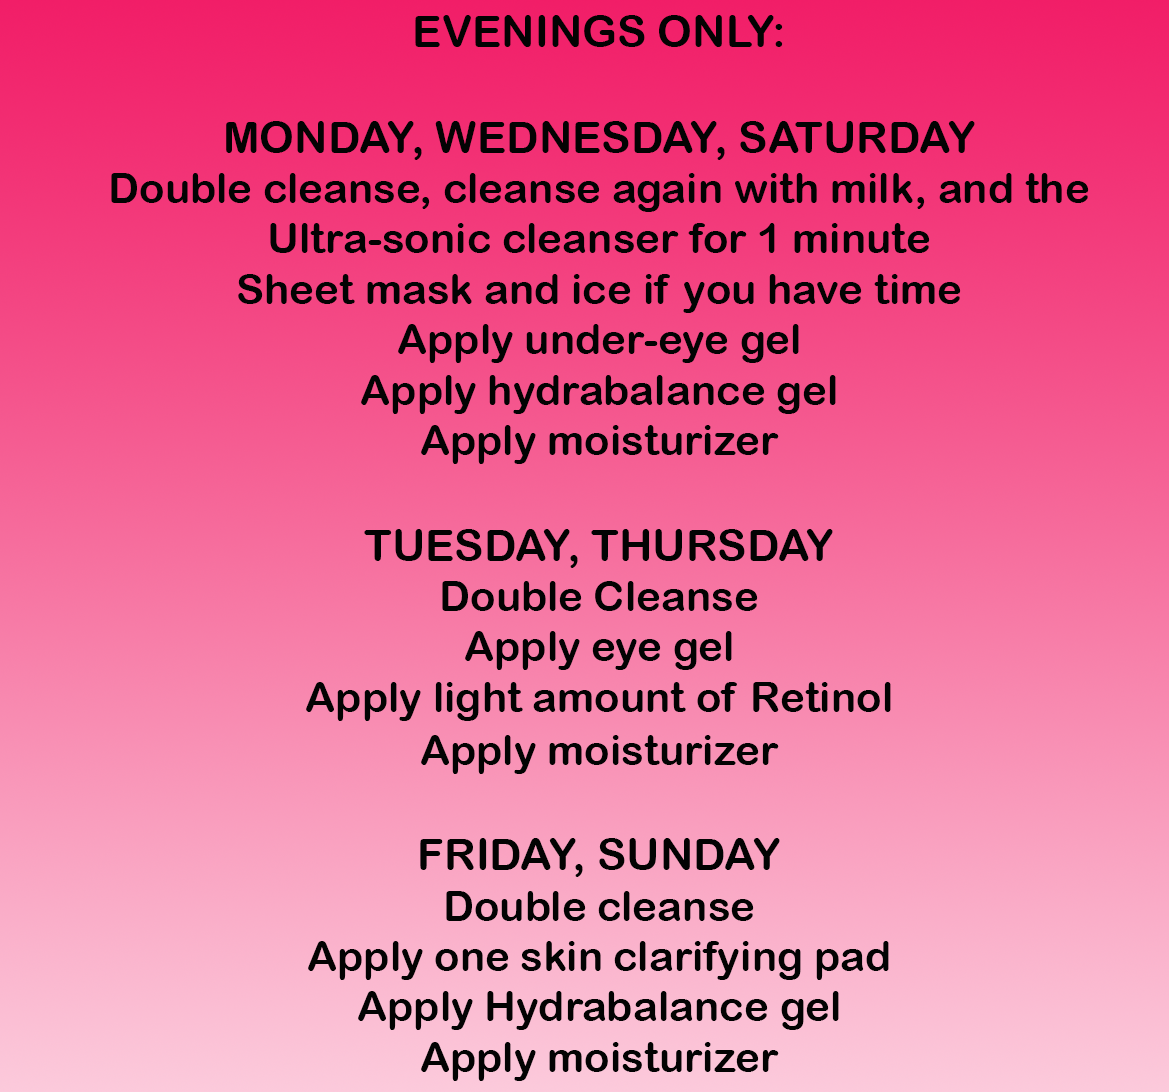 cleansing routine showing cleansing with oil and milk cleanser, followed by hydrabalance and eye cream